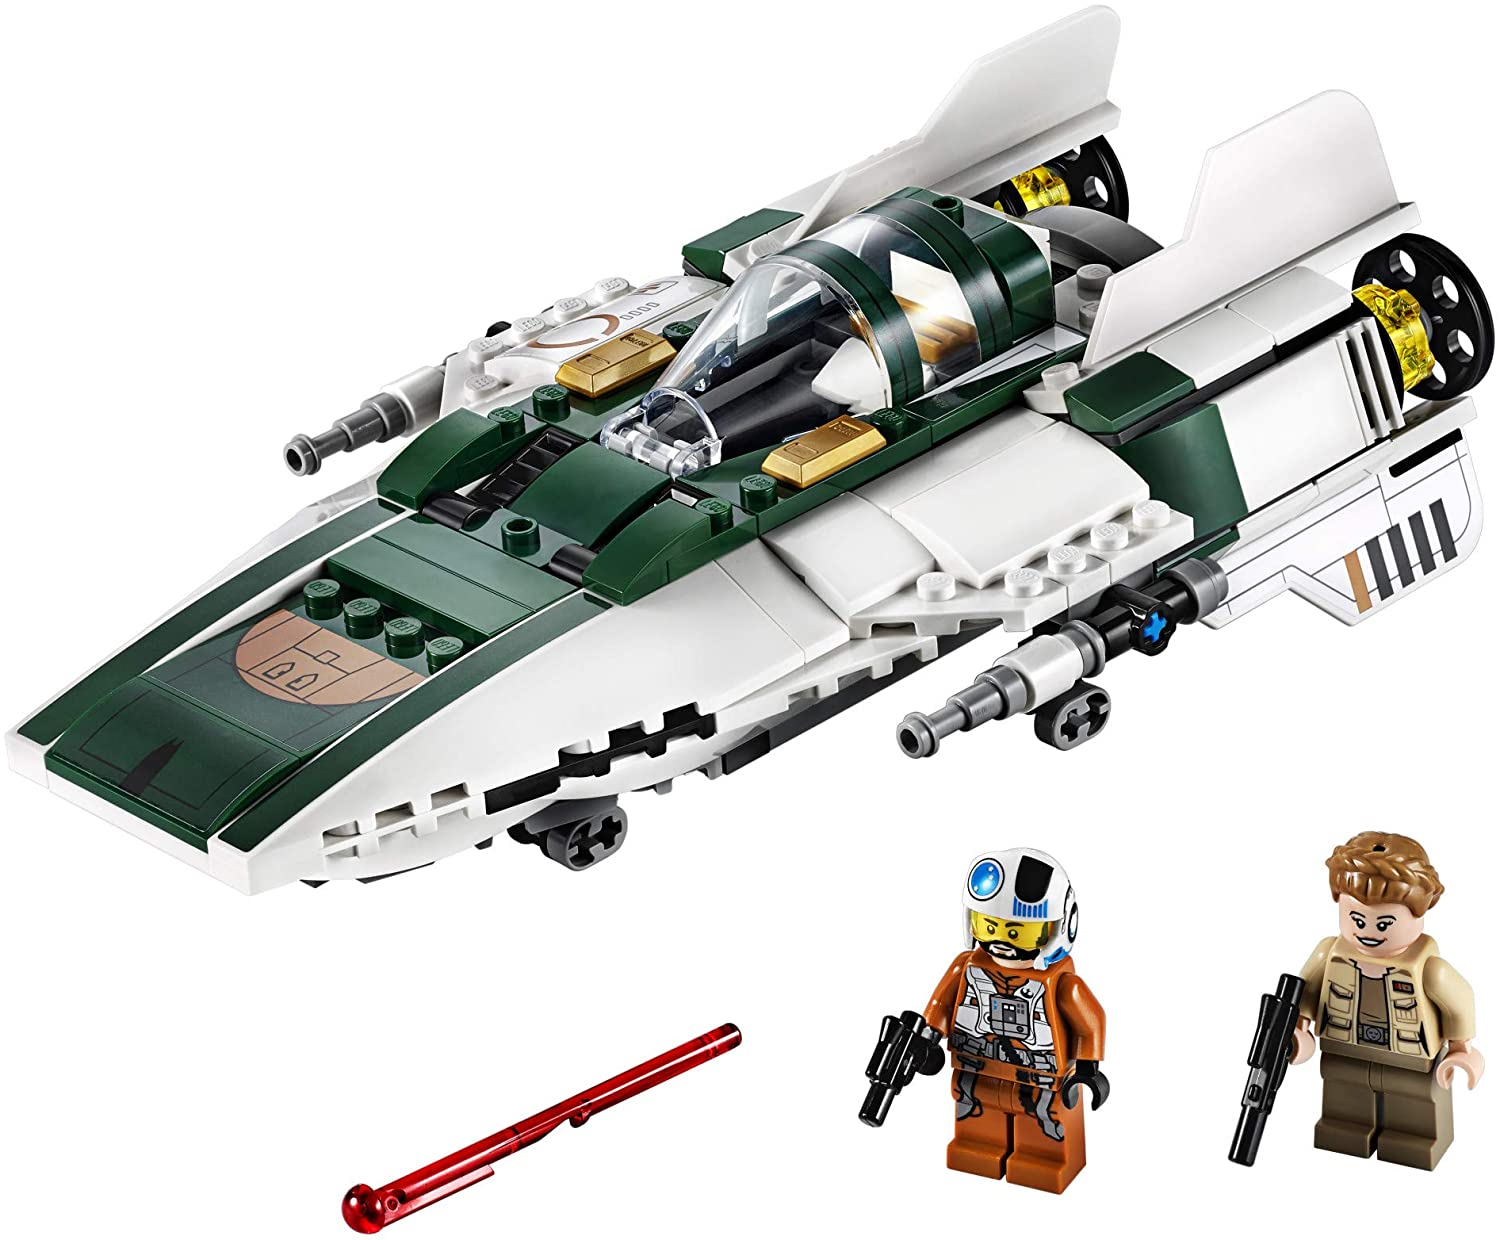 TROS Resistance A-Wing Fighter Lego Set 3